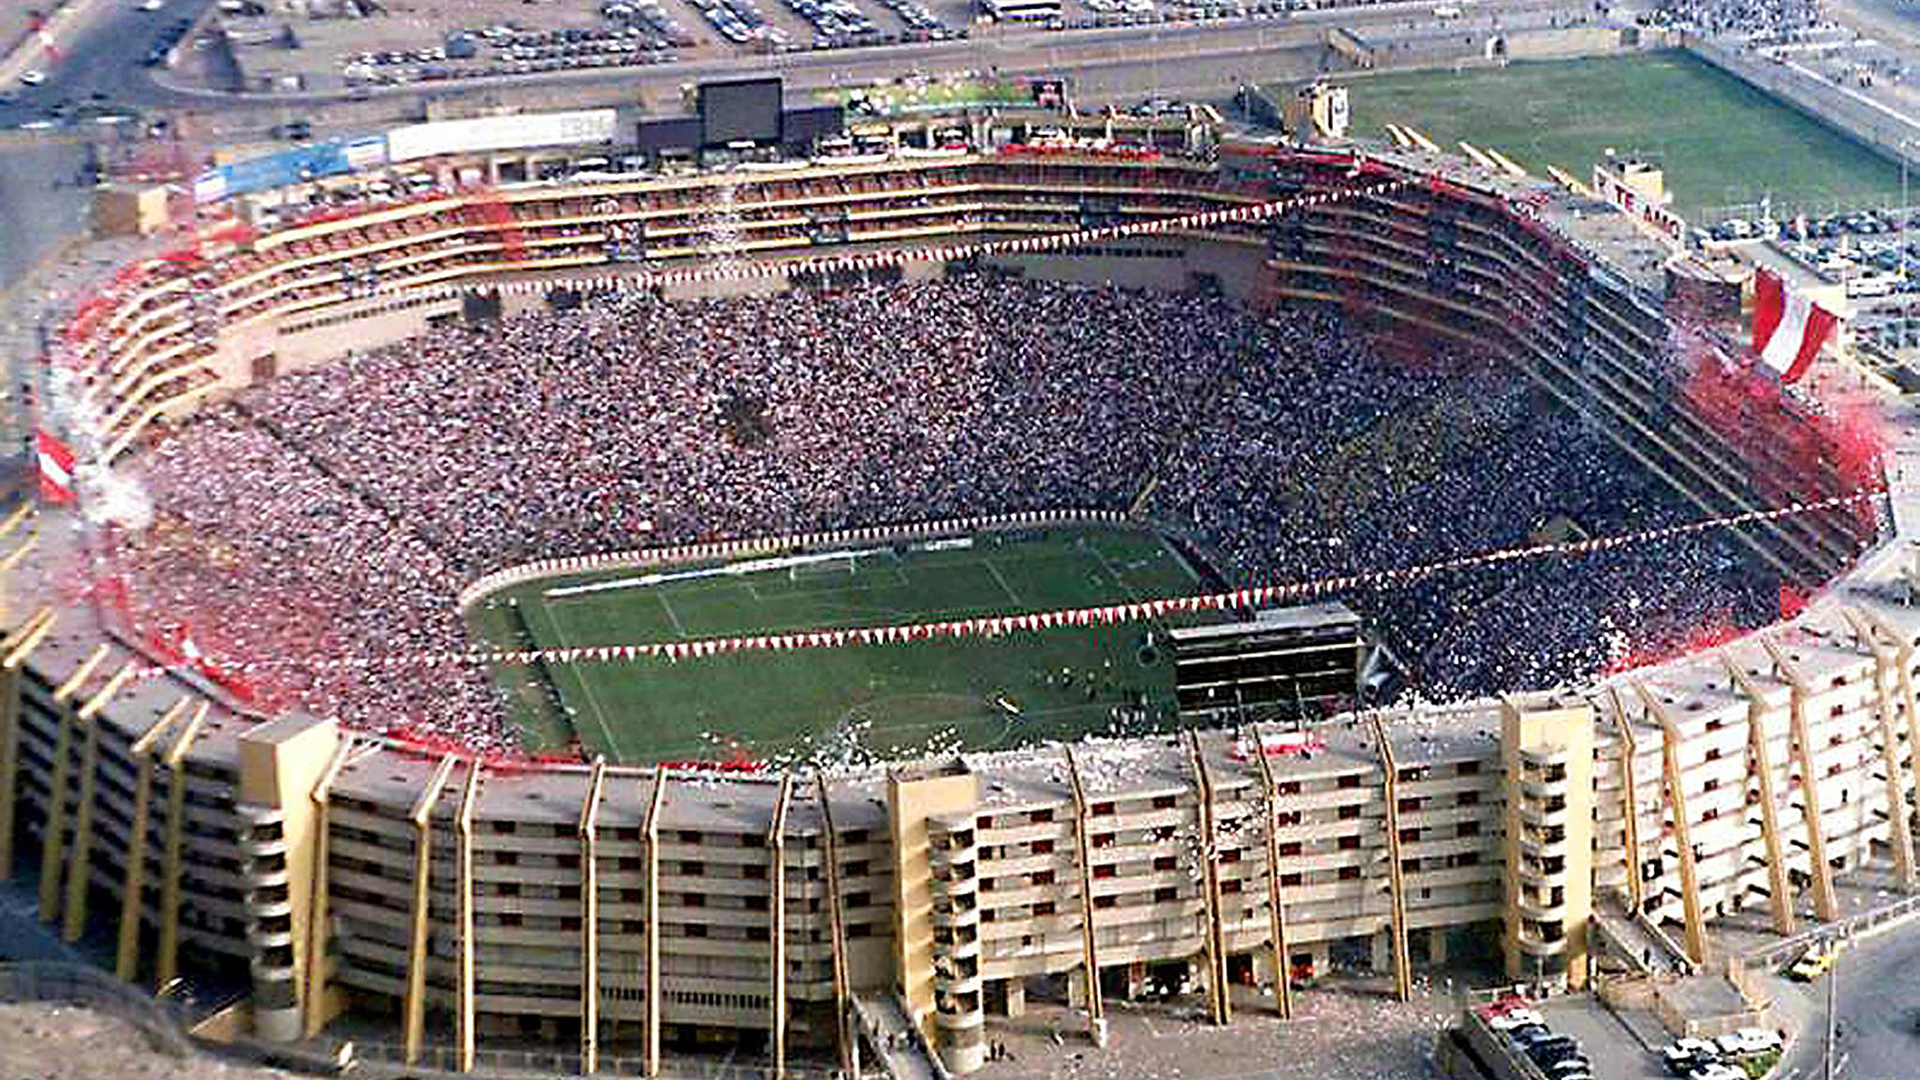 Estadio Monumental Lima